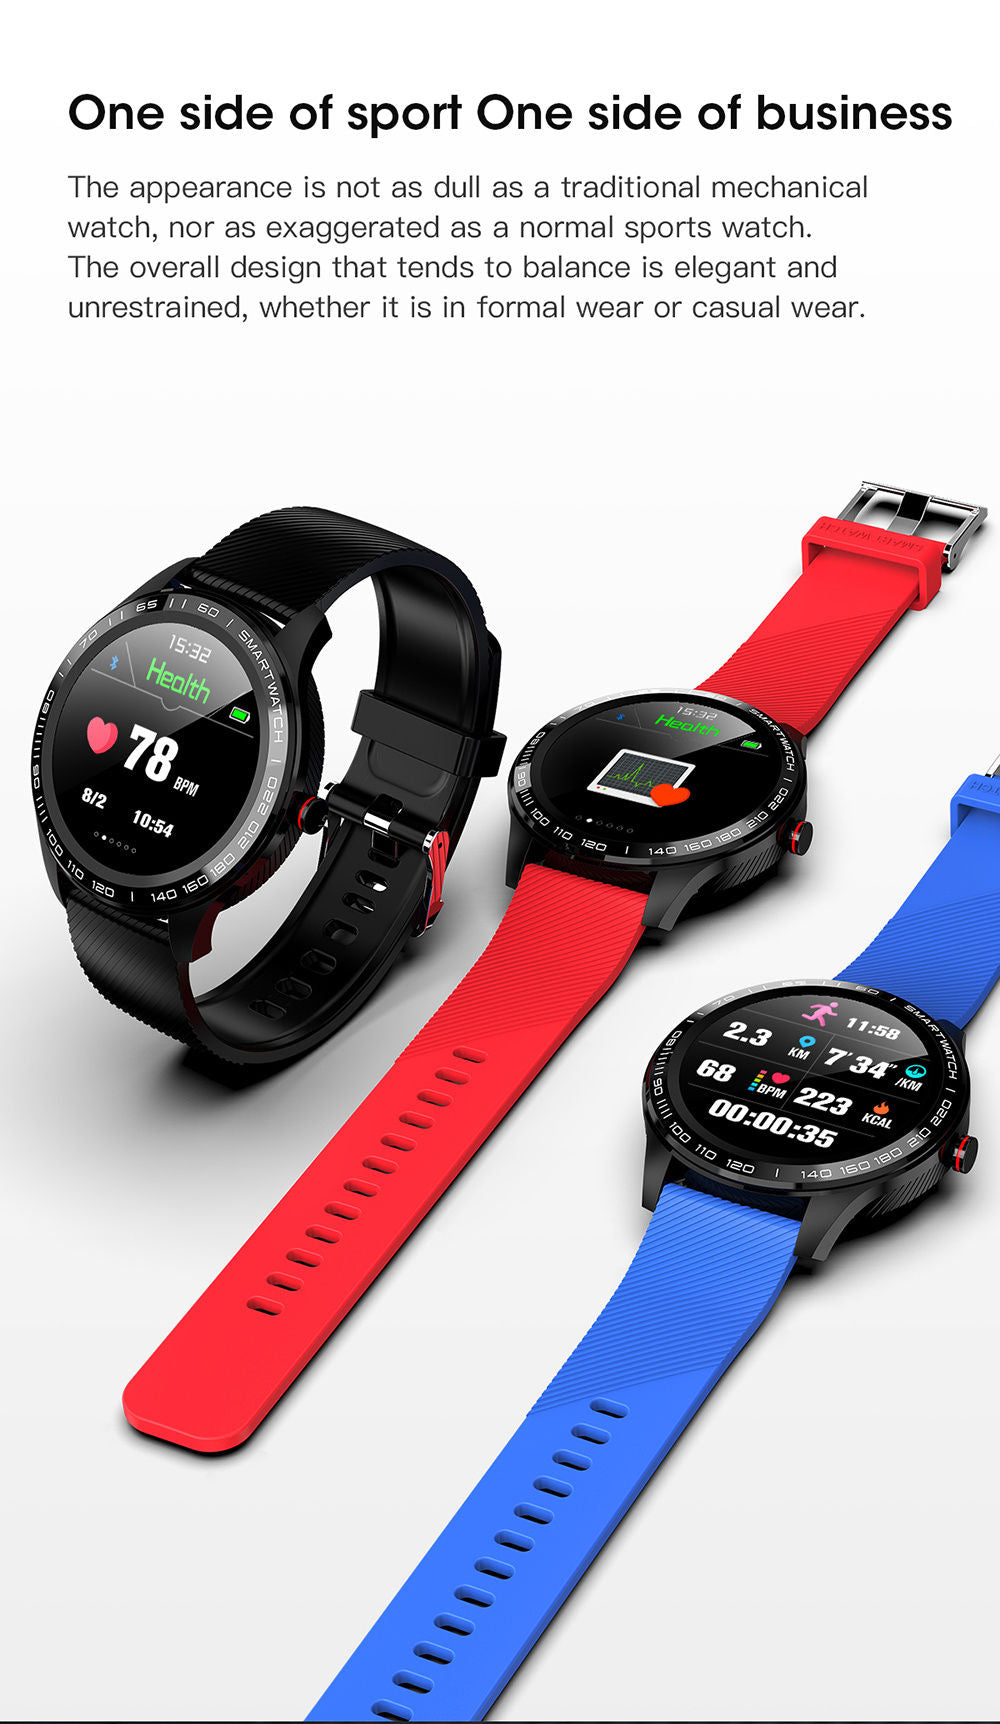 detailed description of L9 smart watch 13